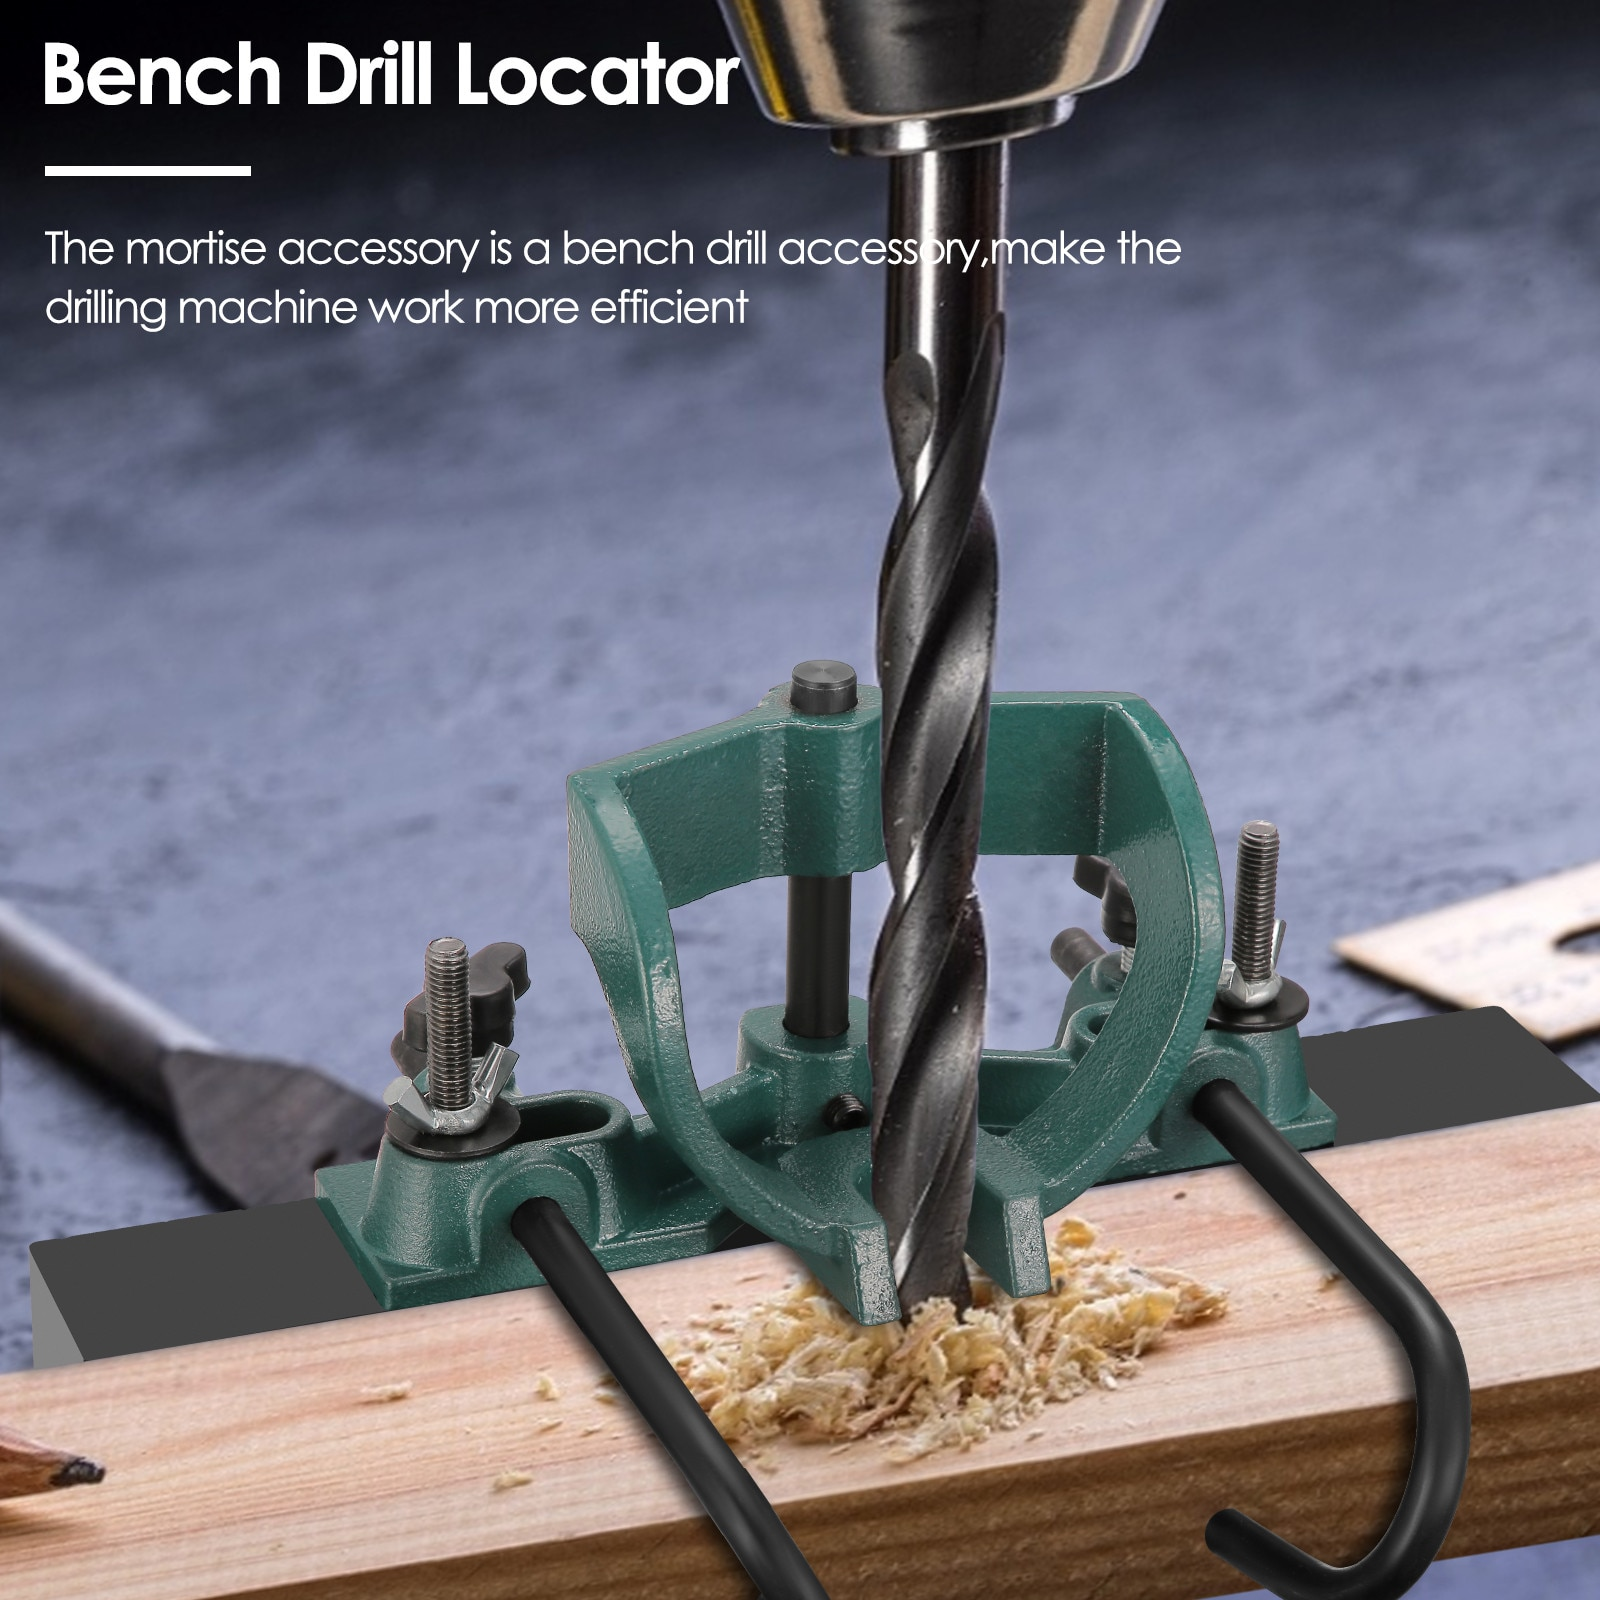 Bench Drill Locator Mortise And Tenon Tools Drill Press Mortise Accessories 1/4 5/16 3/8 And 1/2 Inch Drill Bits enlarge